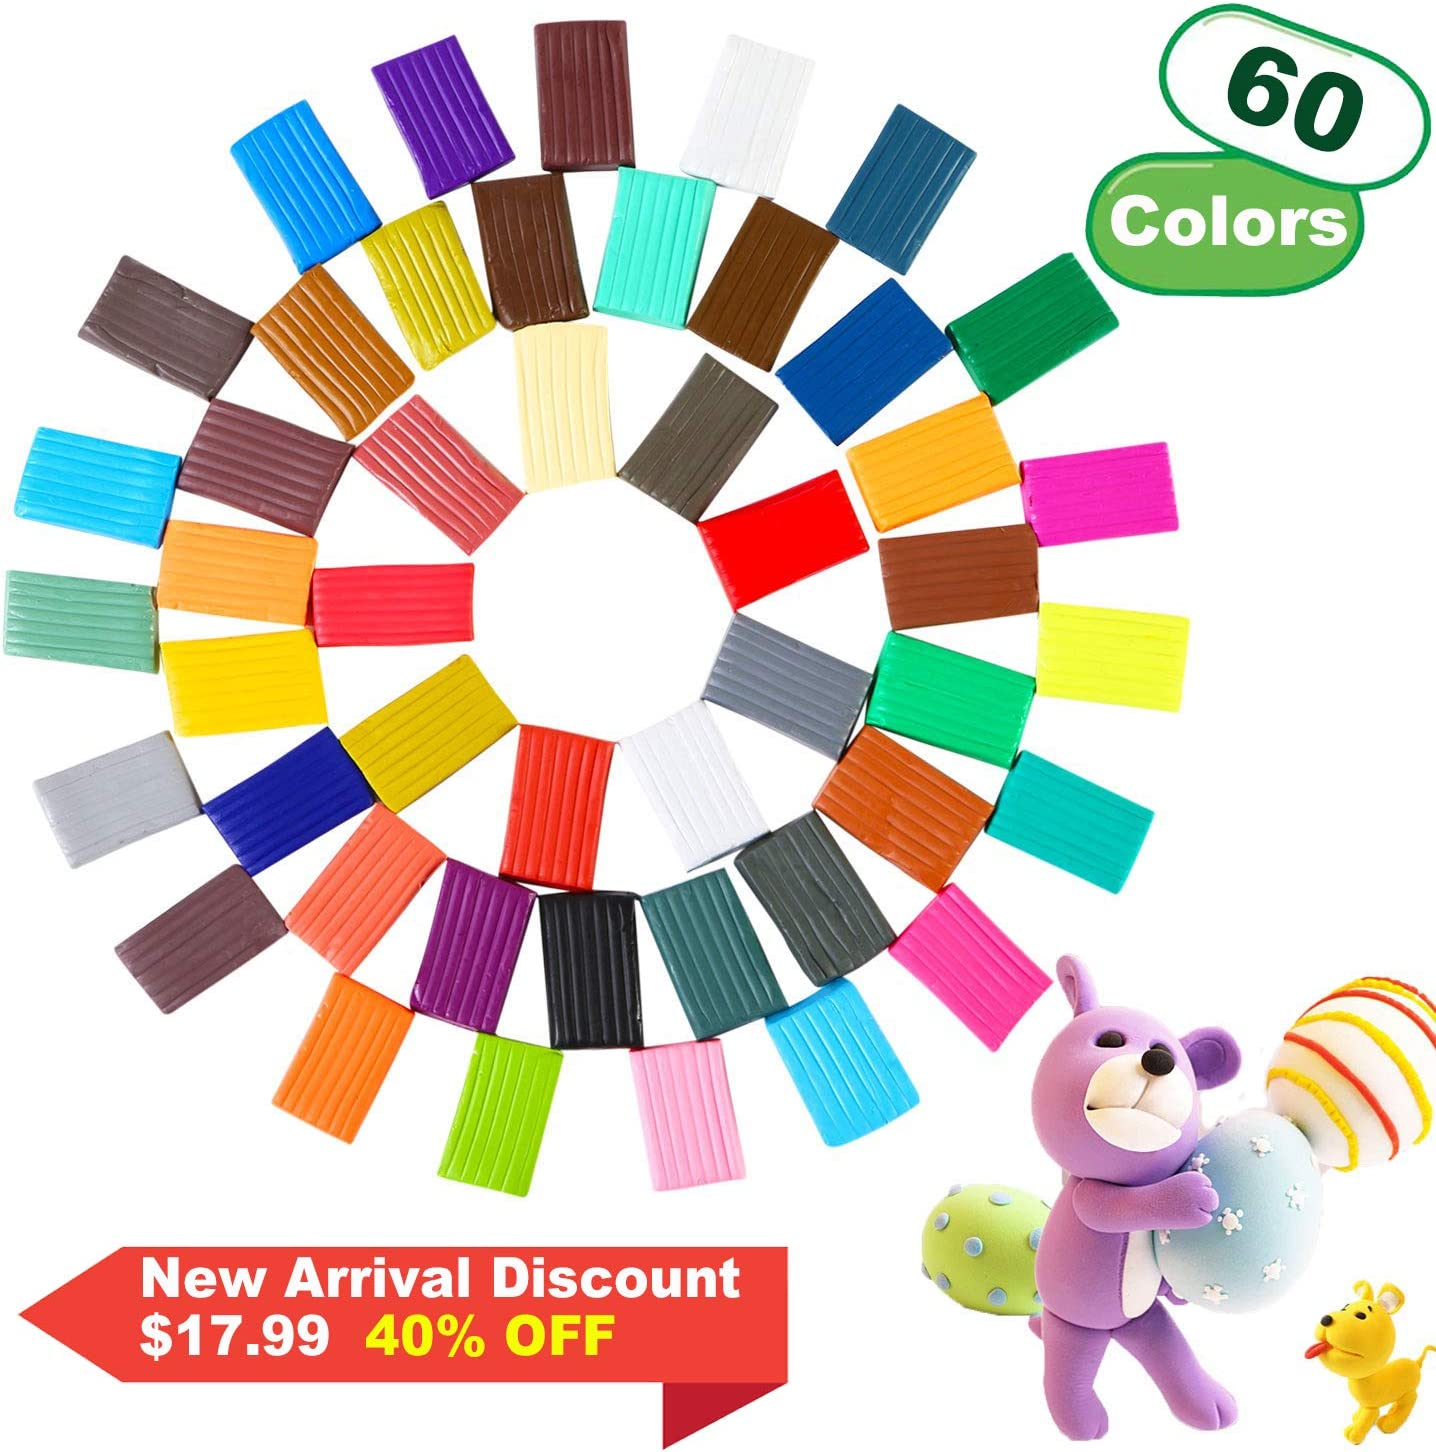 Total 4.7LB Non-Stick Farielyn-X 60 Colors 1 oz//Block Soft Oven Bake Modeling Clay Kit Polymer Clay 19 Tools and 10 Kinds of Accessories Non-Toxic Ideal DIY Gift for Kids